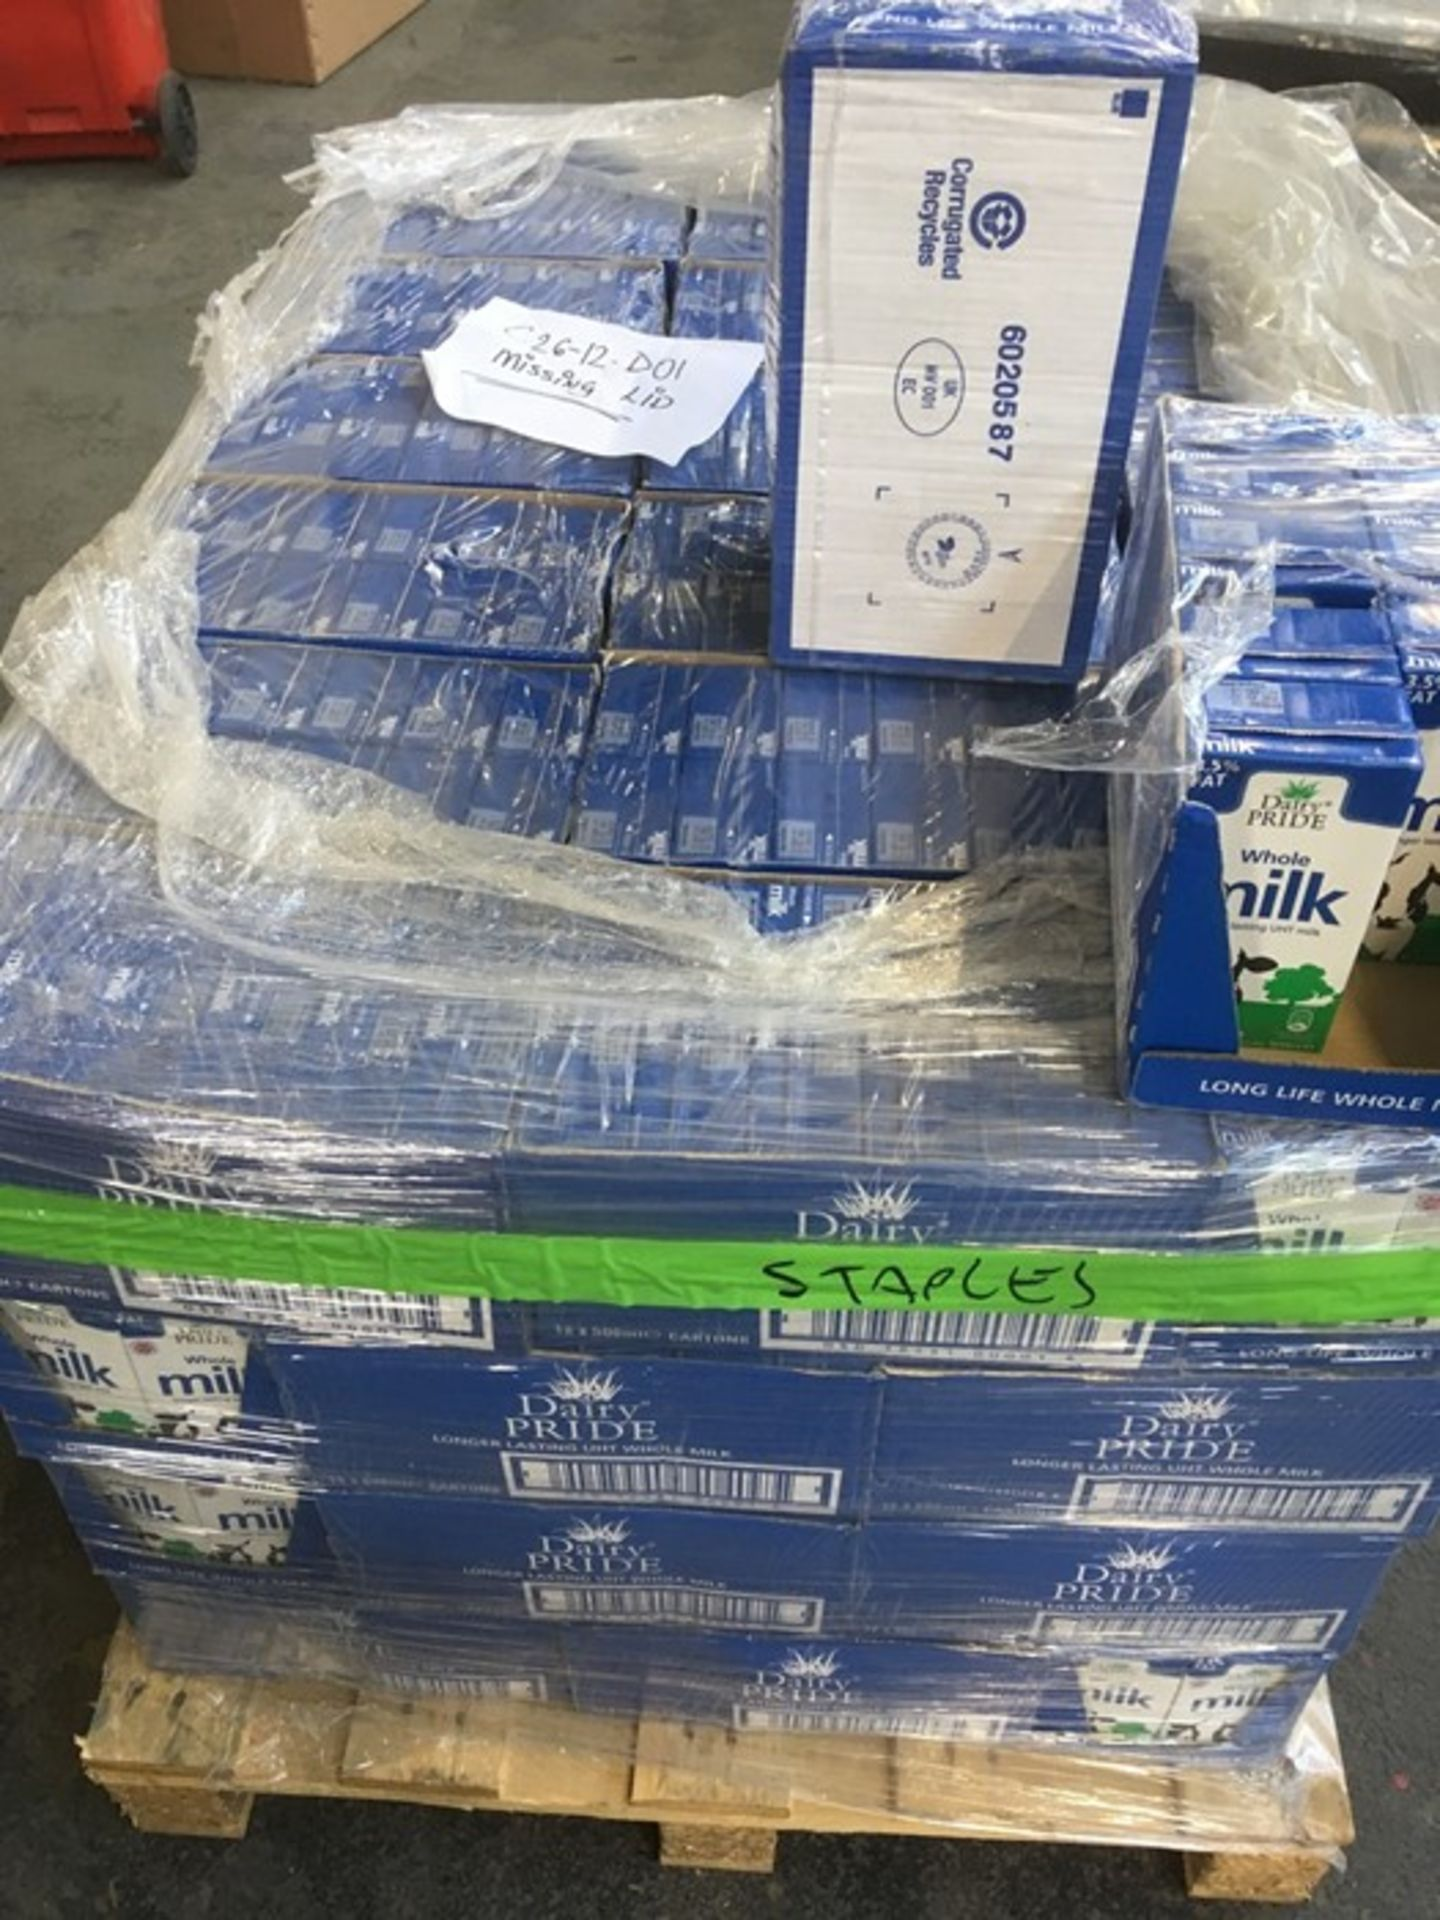 Lotto 86 - 1 LOT TO CONTAIN ASSORTED OFFICE SUPPLIES / INCLUDING BINS, CELLOTAPE AND ZIP TIES / PN - 678 (